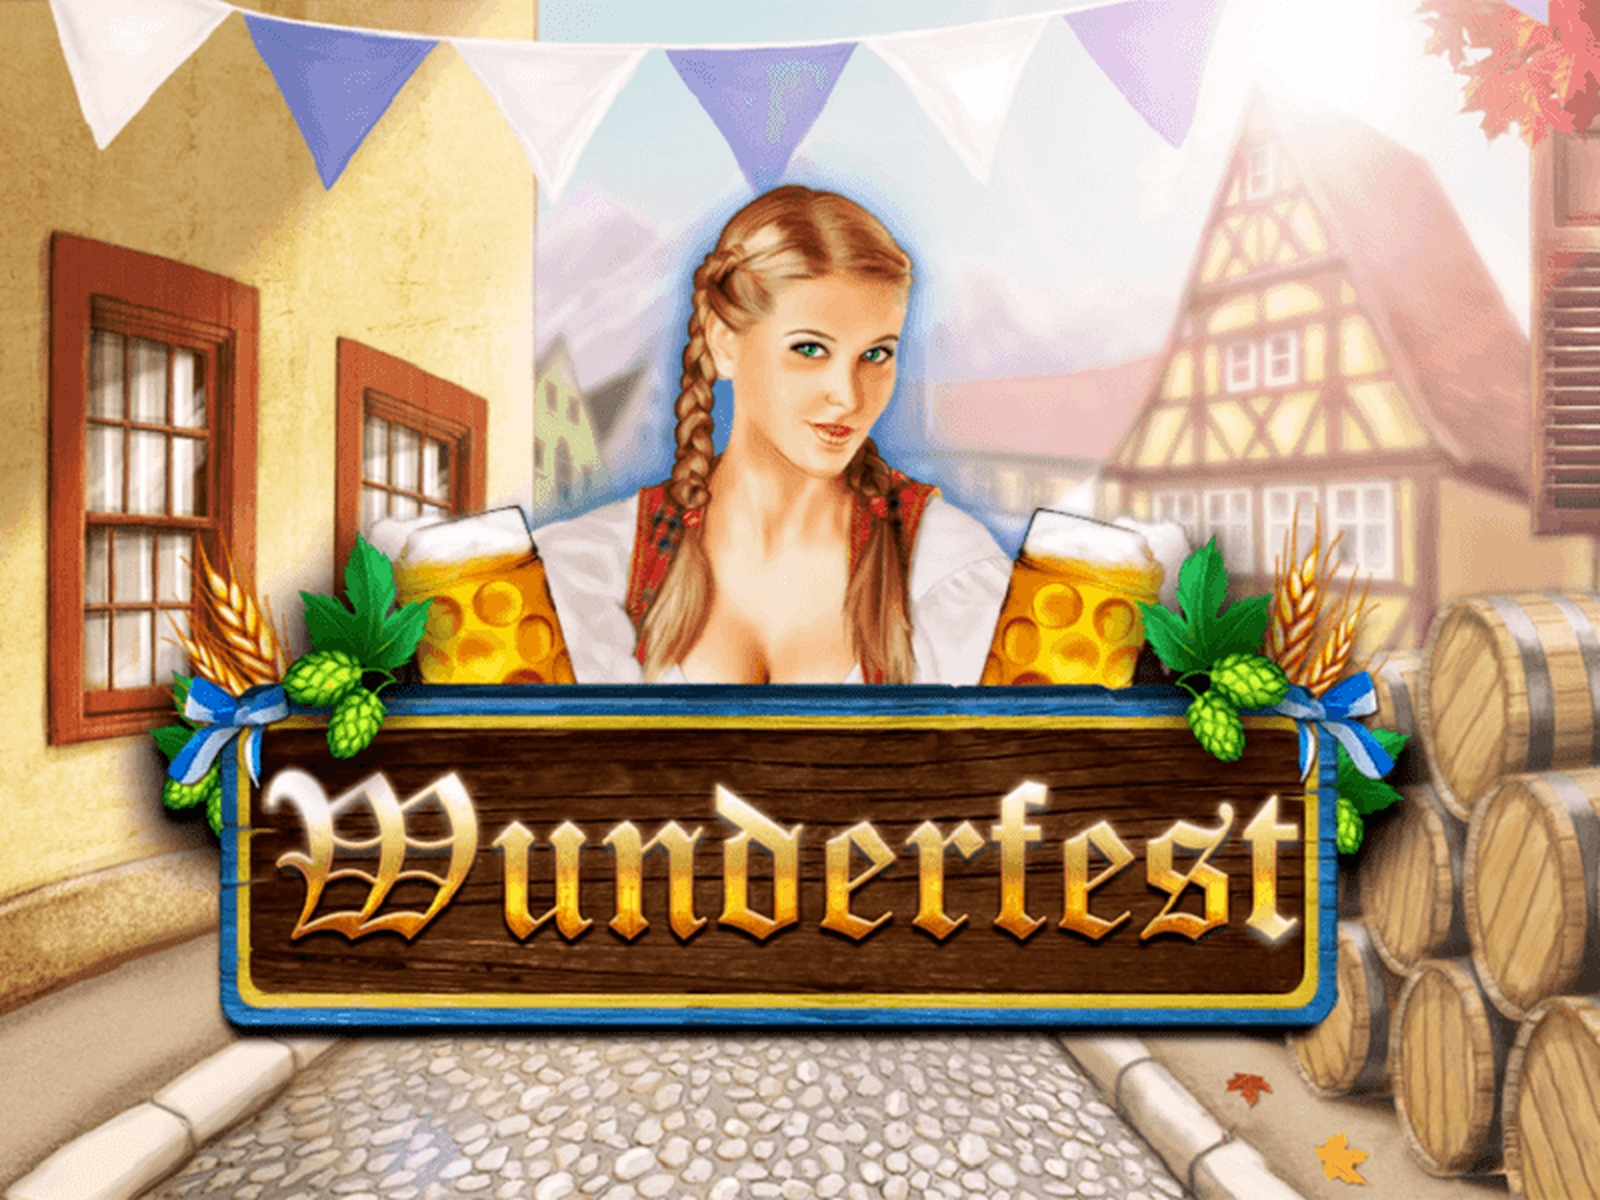 Se Wunderfest Online Slot Demo Game, Booming Games